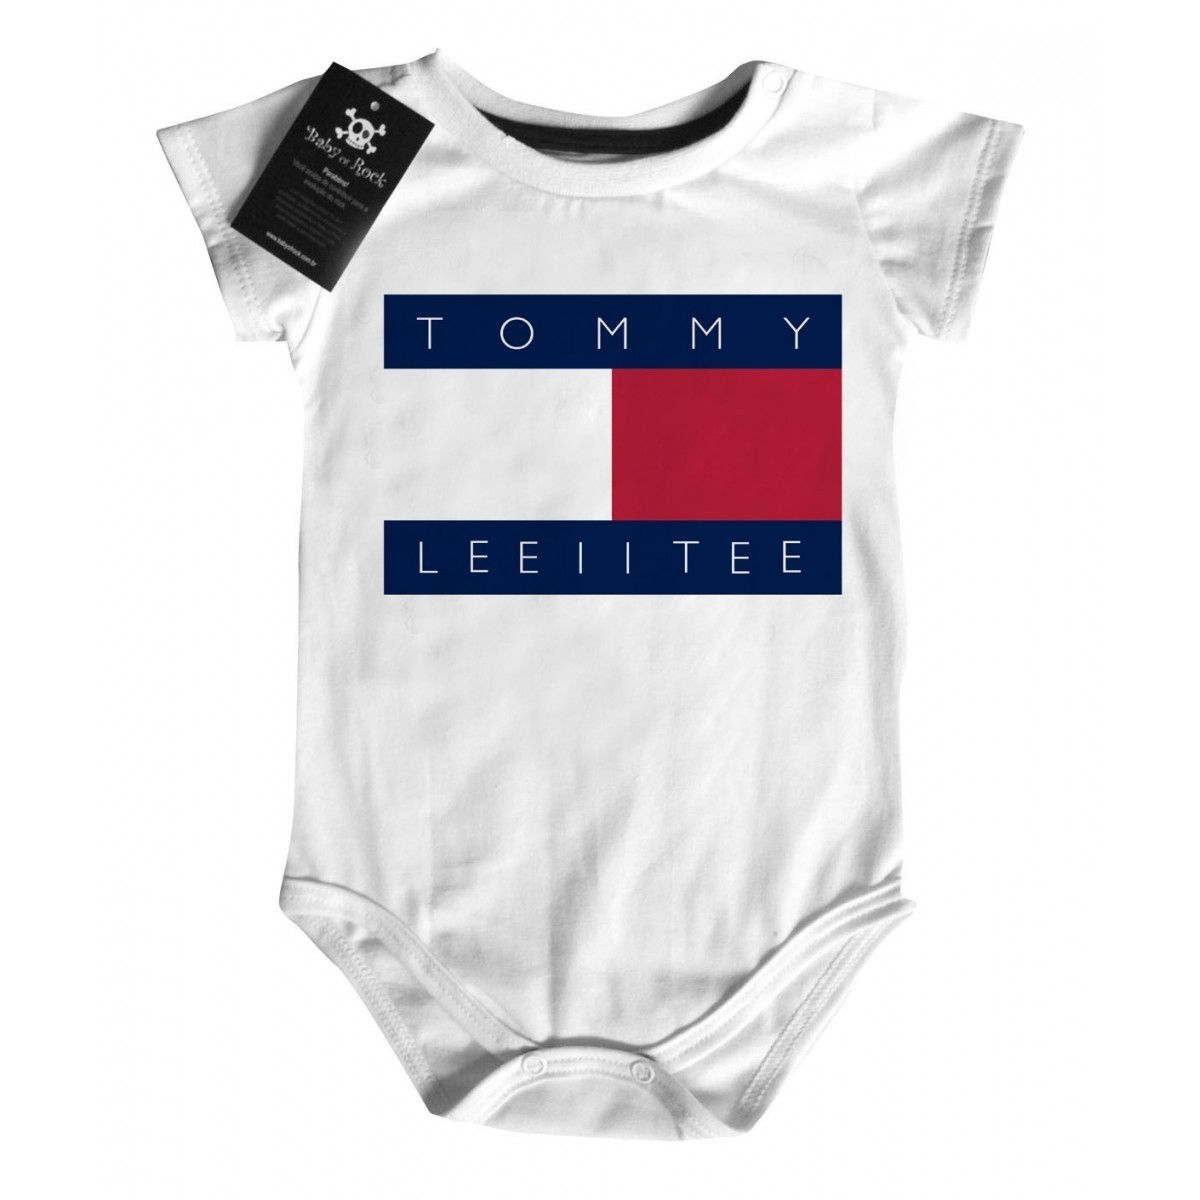 Body Divertido Criativo Baby - Tommy Leiite - White  - Baby Monster S/A